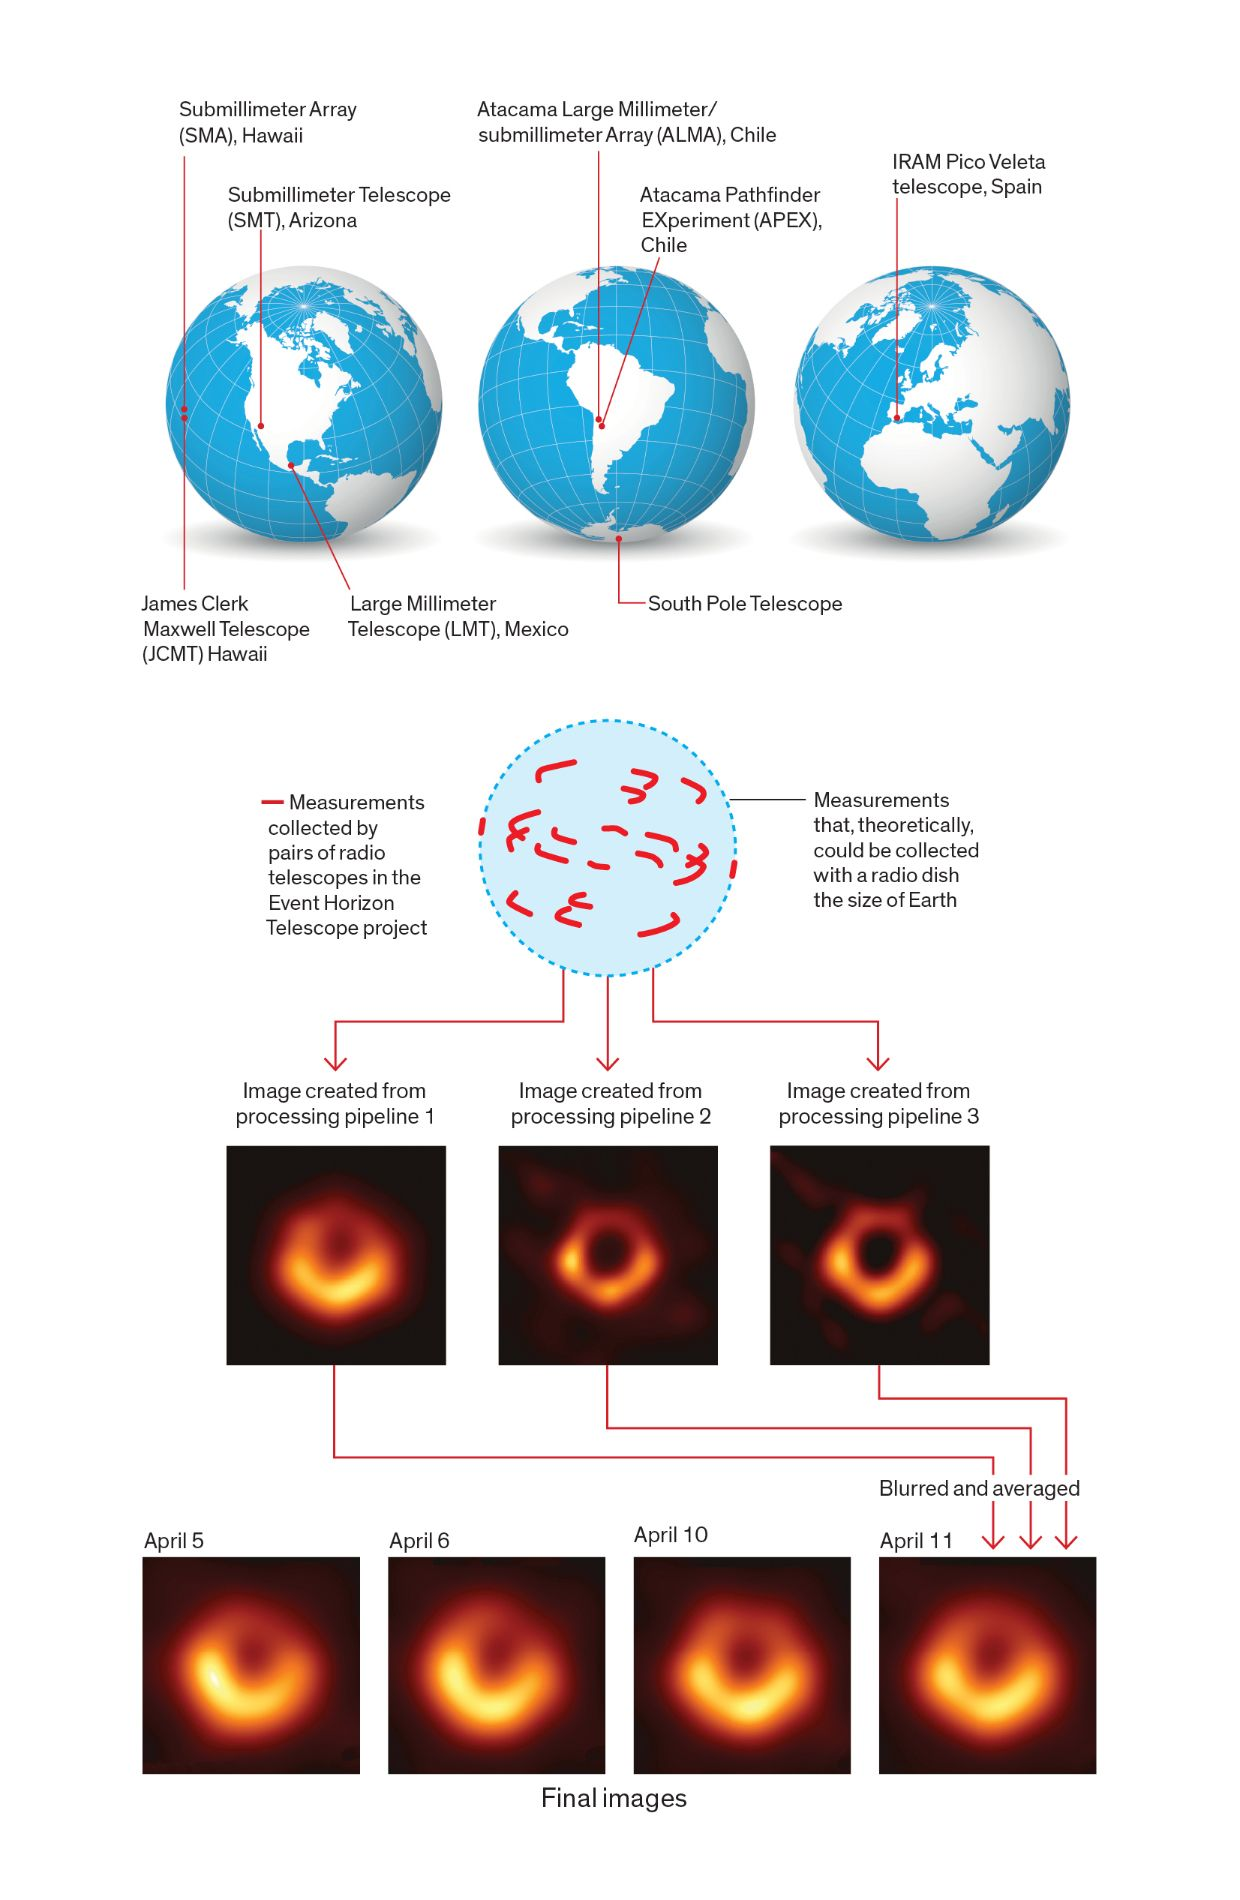 The measurements taken to construct these images of a black hole came from seven radio telescopes spread around the world. An eighth (at the South Pole) aided in the calibration of these measurements. Newly developed algorithms and supercomputers were used to correlate the observed signals to make measurements and reconstruct the images from these measurements.